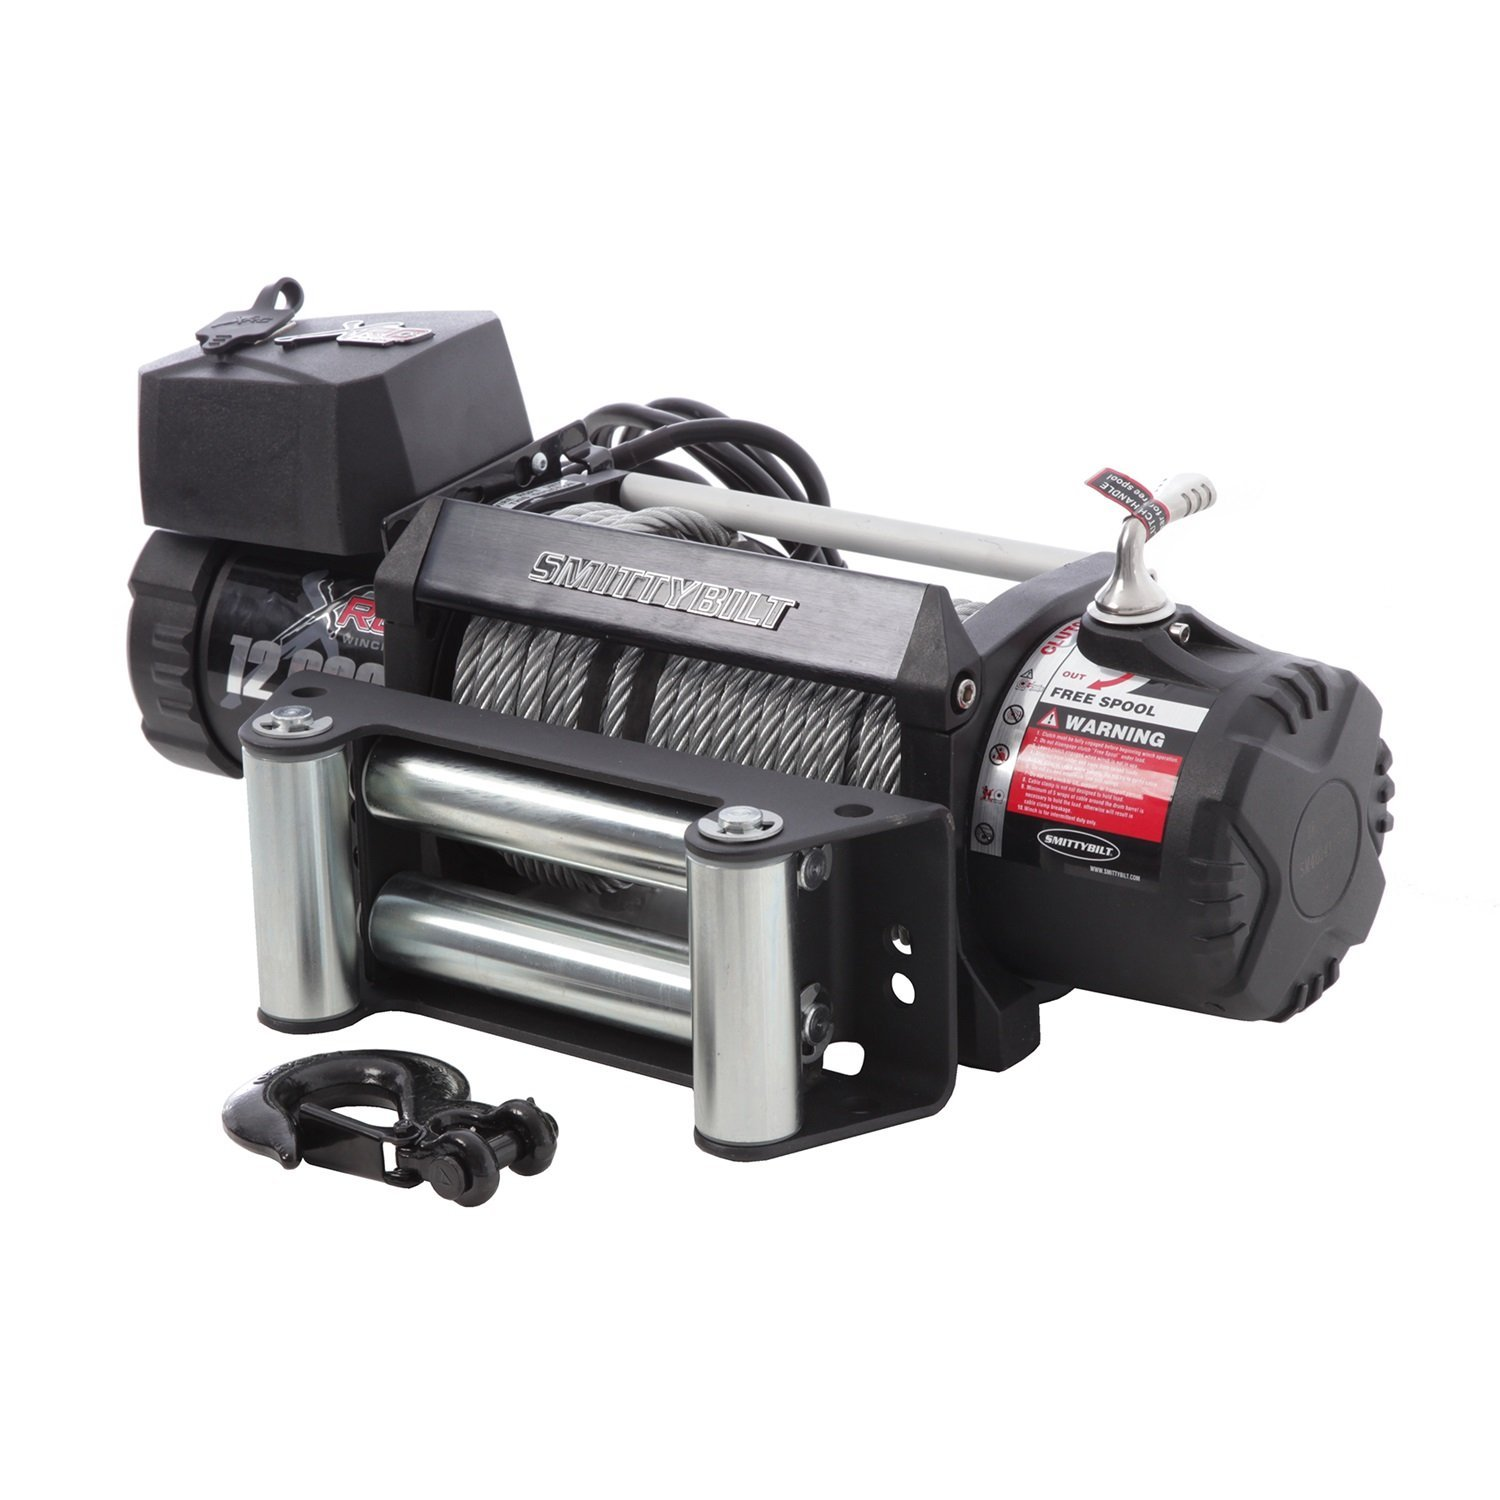 Smittybilt XRC Winch with 12000 lb. Load Capacity